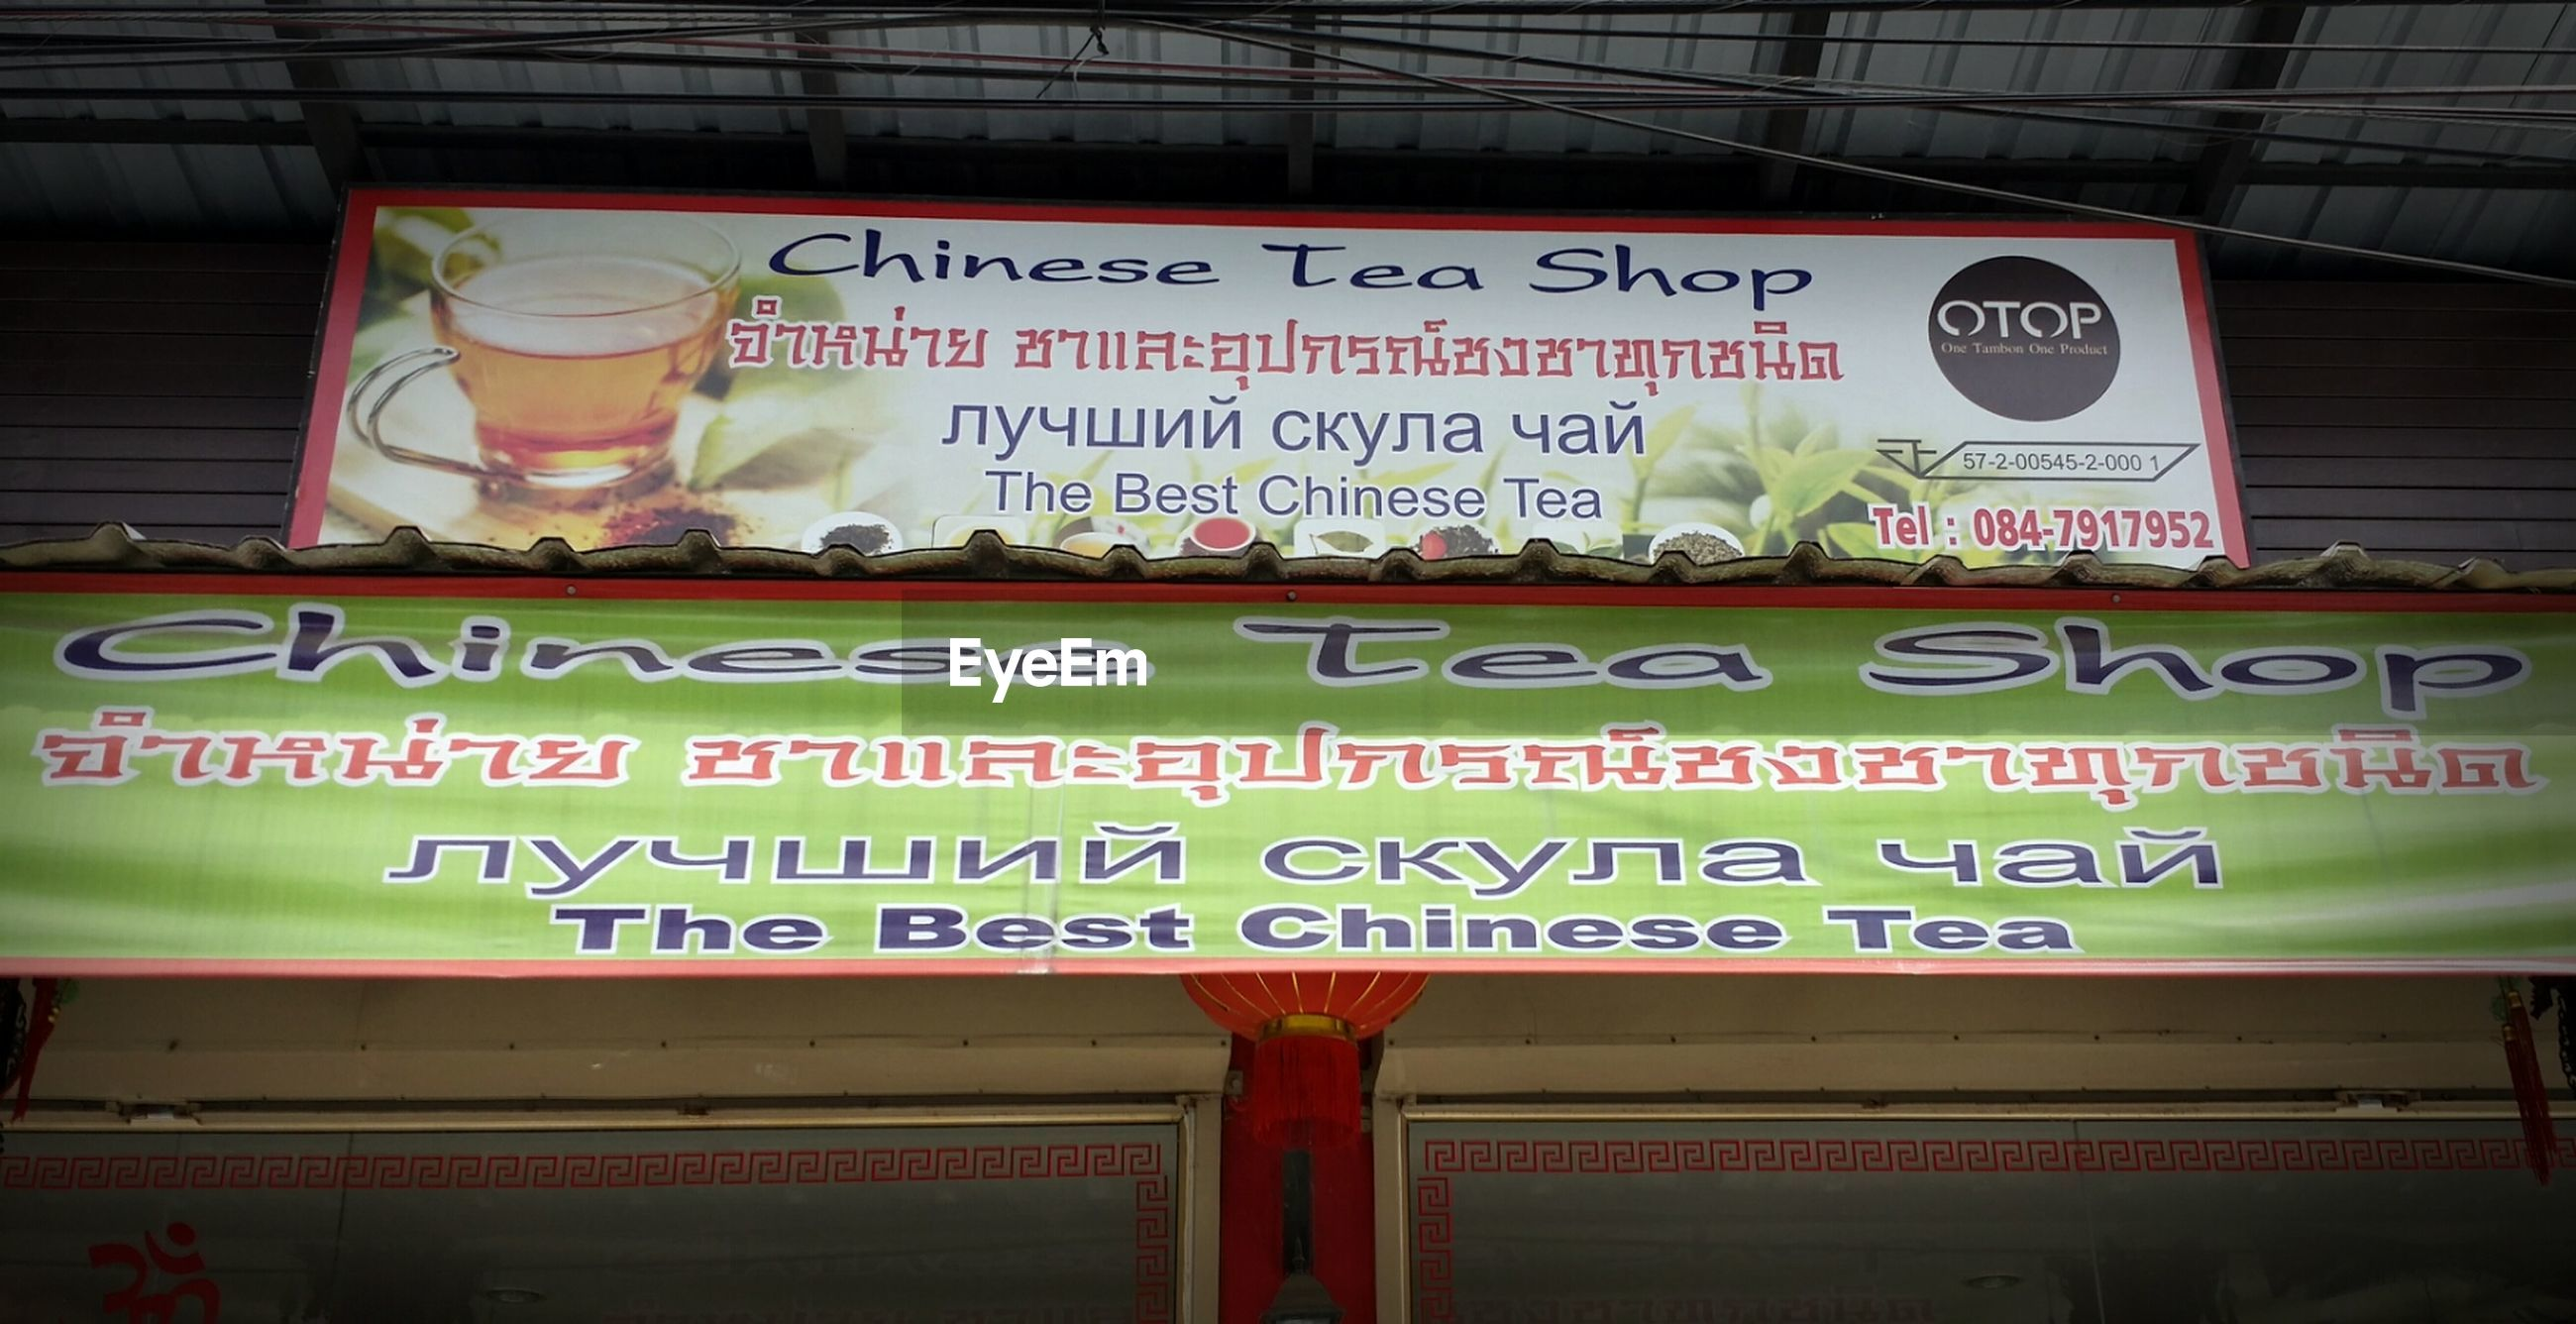 text, western script, communication, non-western script, information, information sign, capital letter, sign, guidance, indoors, low angle view, advertisement, built structure, architecture, no people, arrow symbol, directional sign, commercial sign, number, signboard